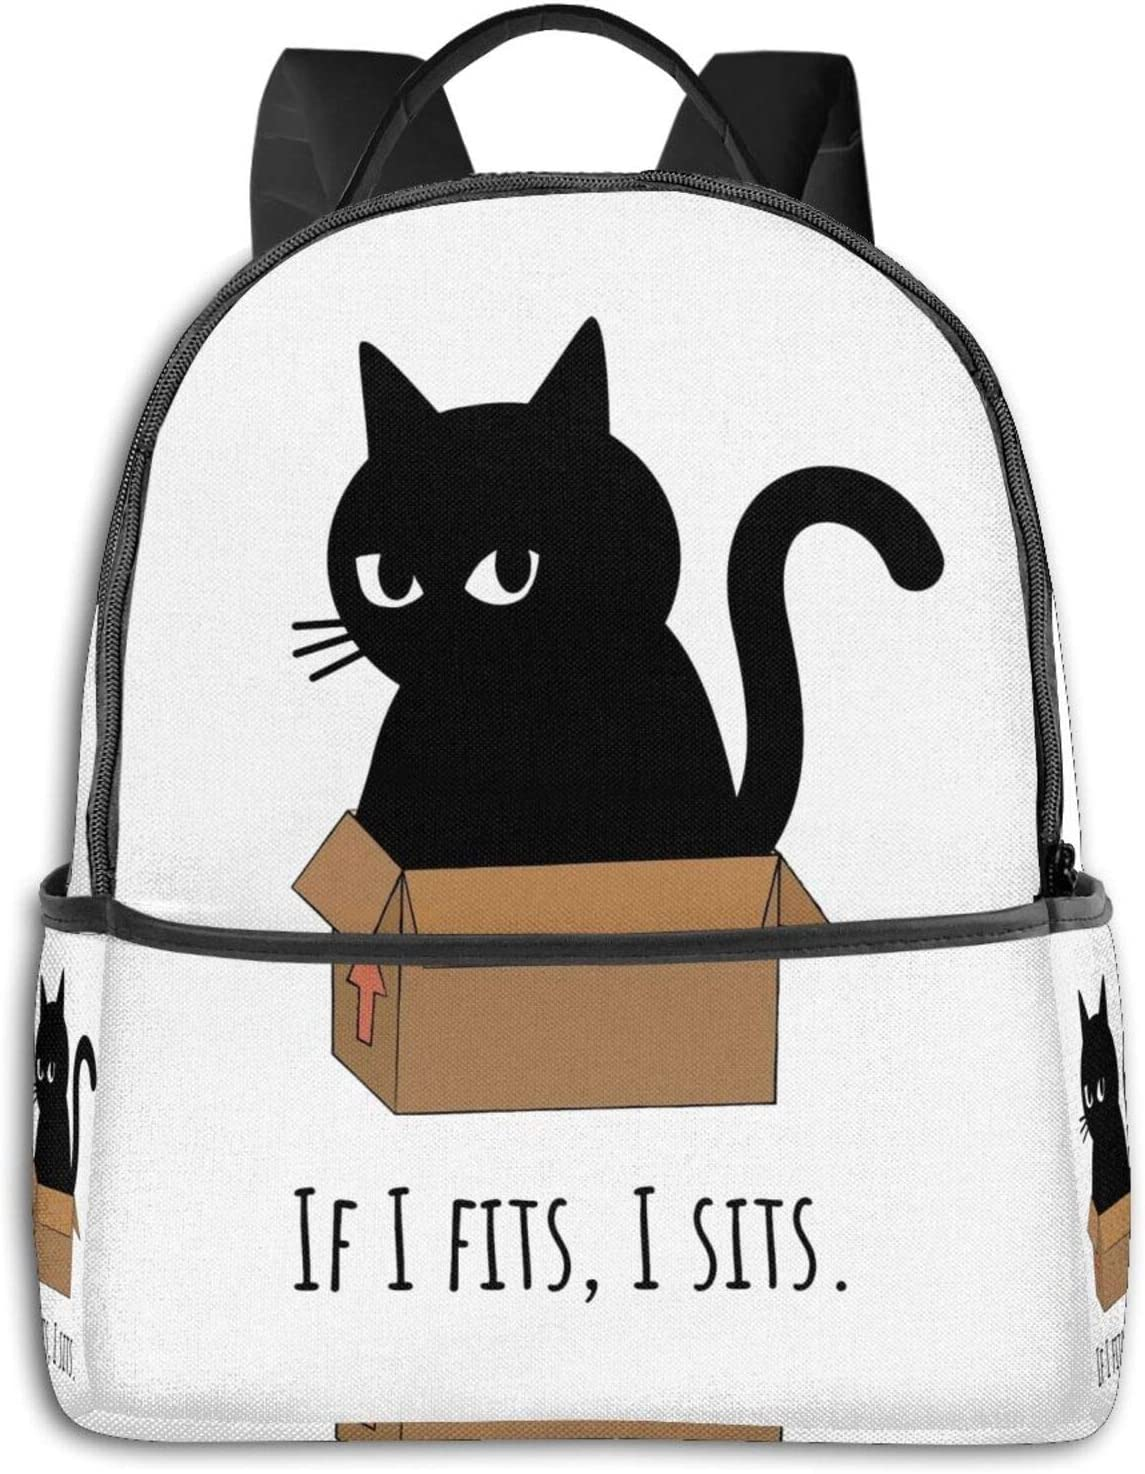 If I S I Sits Bla Cat Student School Bag School Cycling Leisure Travel Camping Outdoor Backpack